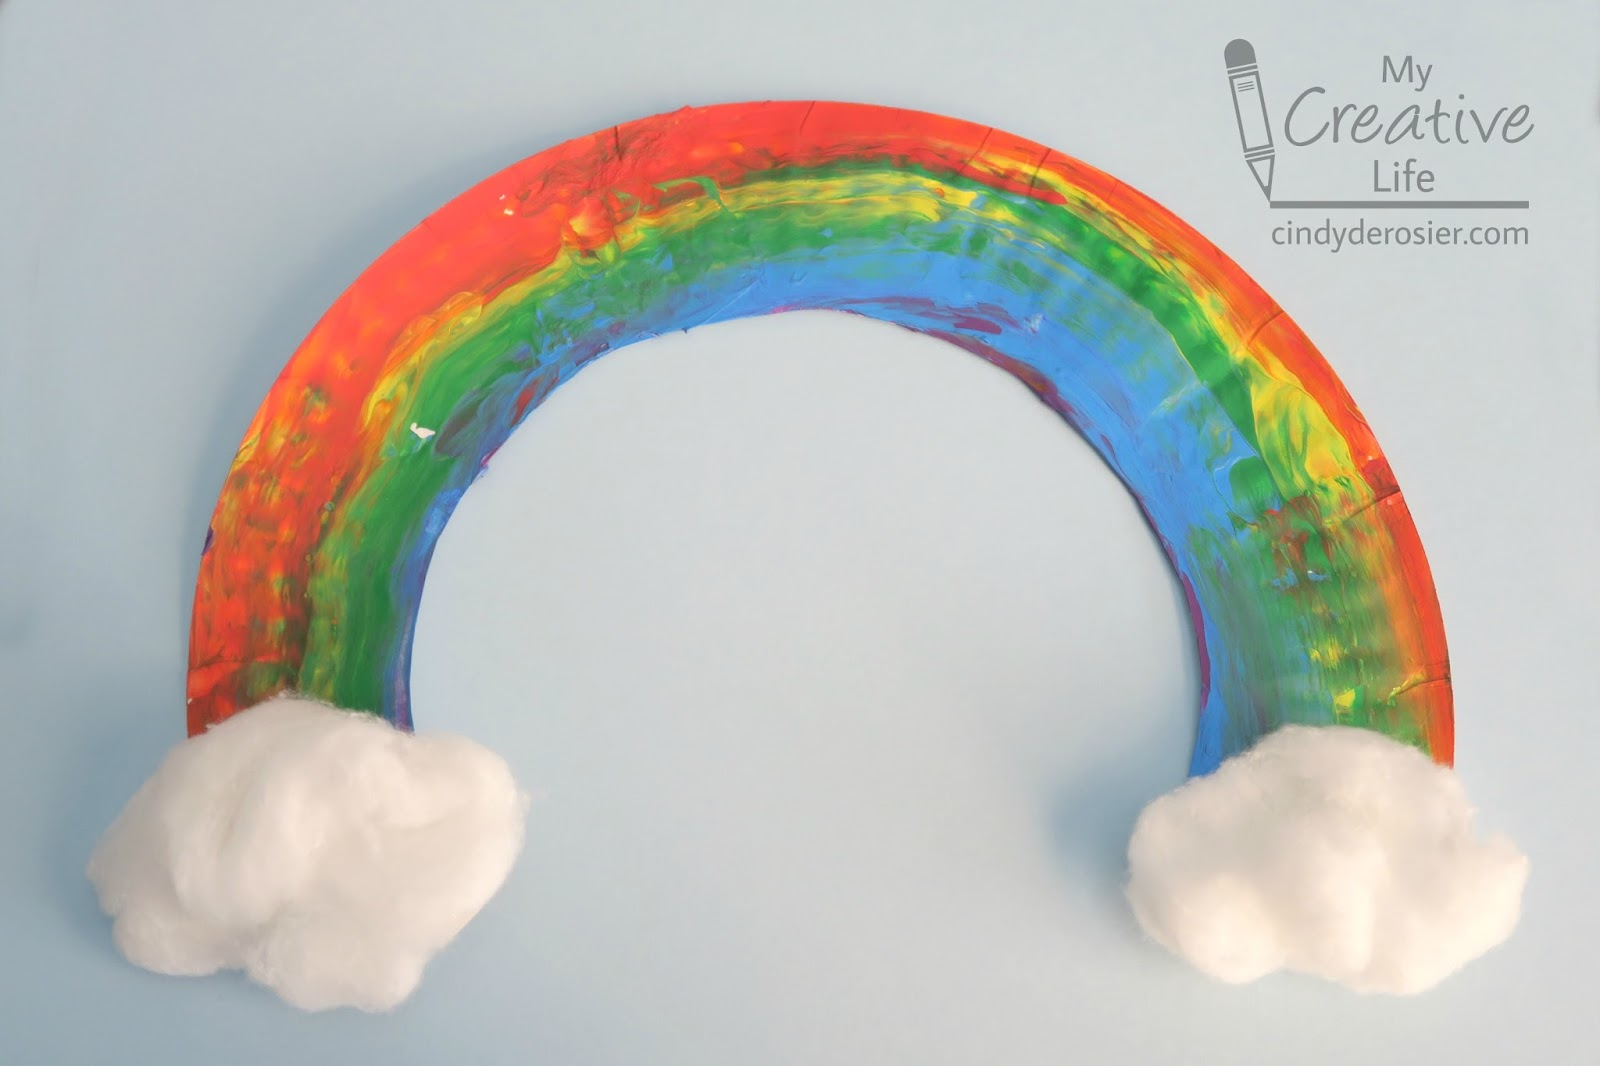 Hang your rainbow with fishing line tape it to the wall or display it in a window. & Cindy deRosier: My Creative Life: u0027Hand-Paintedu0027 Paper Plate Rainbow